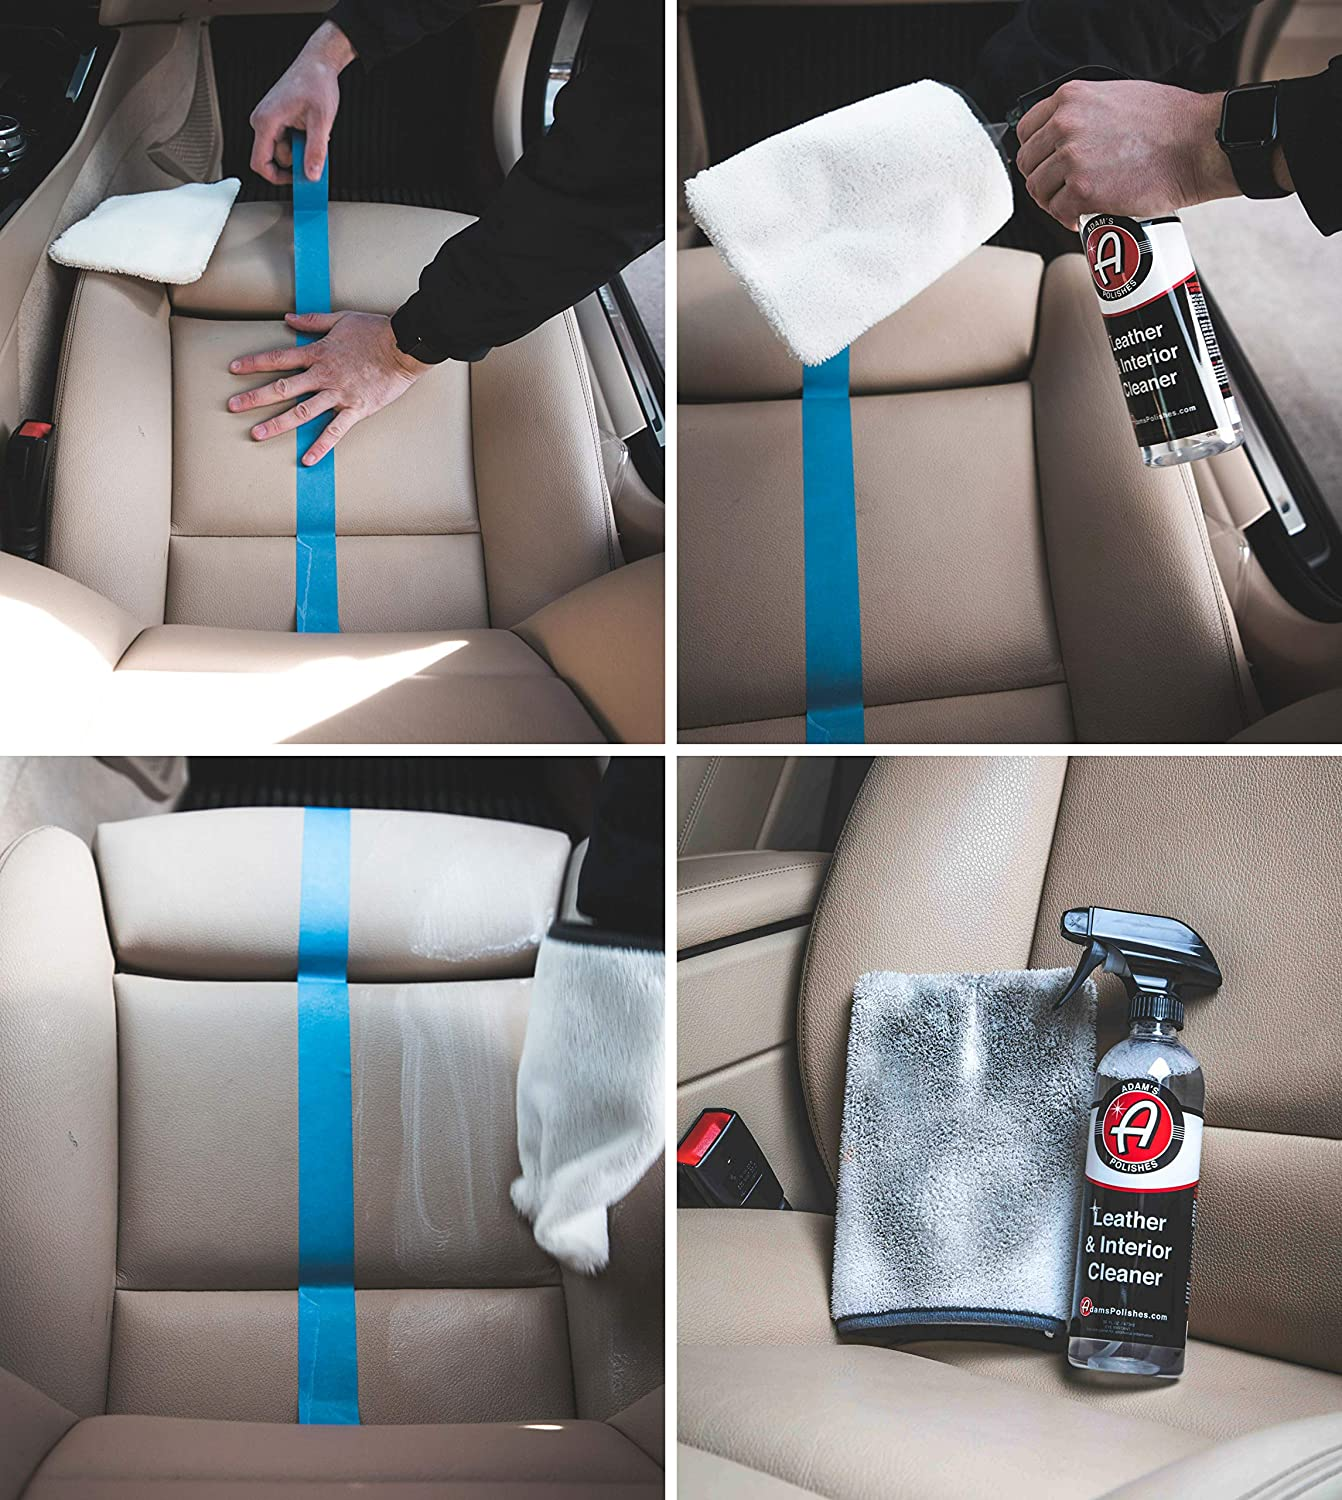 Safe for Interior Surfaces Adams Interior Scrubbing Mitt Agitate Surfaces to Quickly Remove Stubborn Dirt or Stains